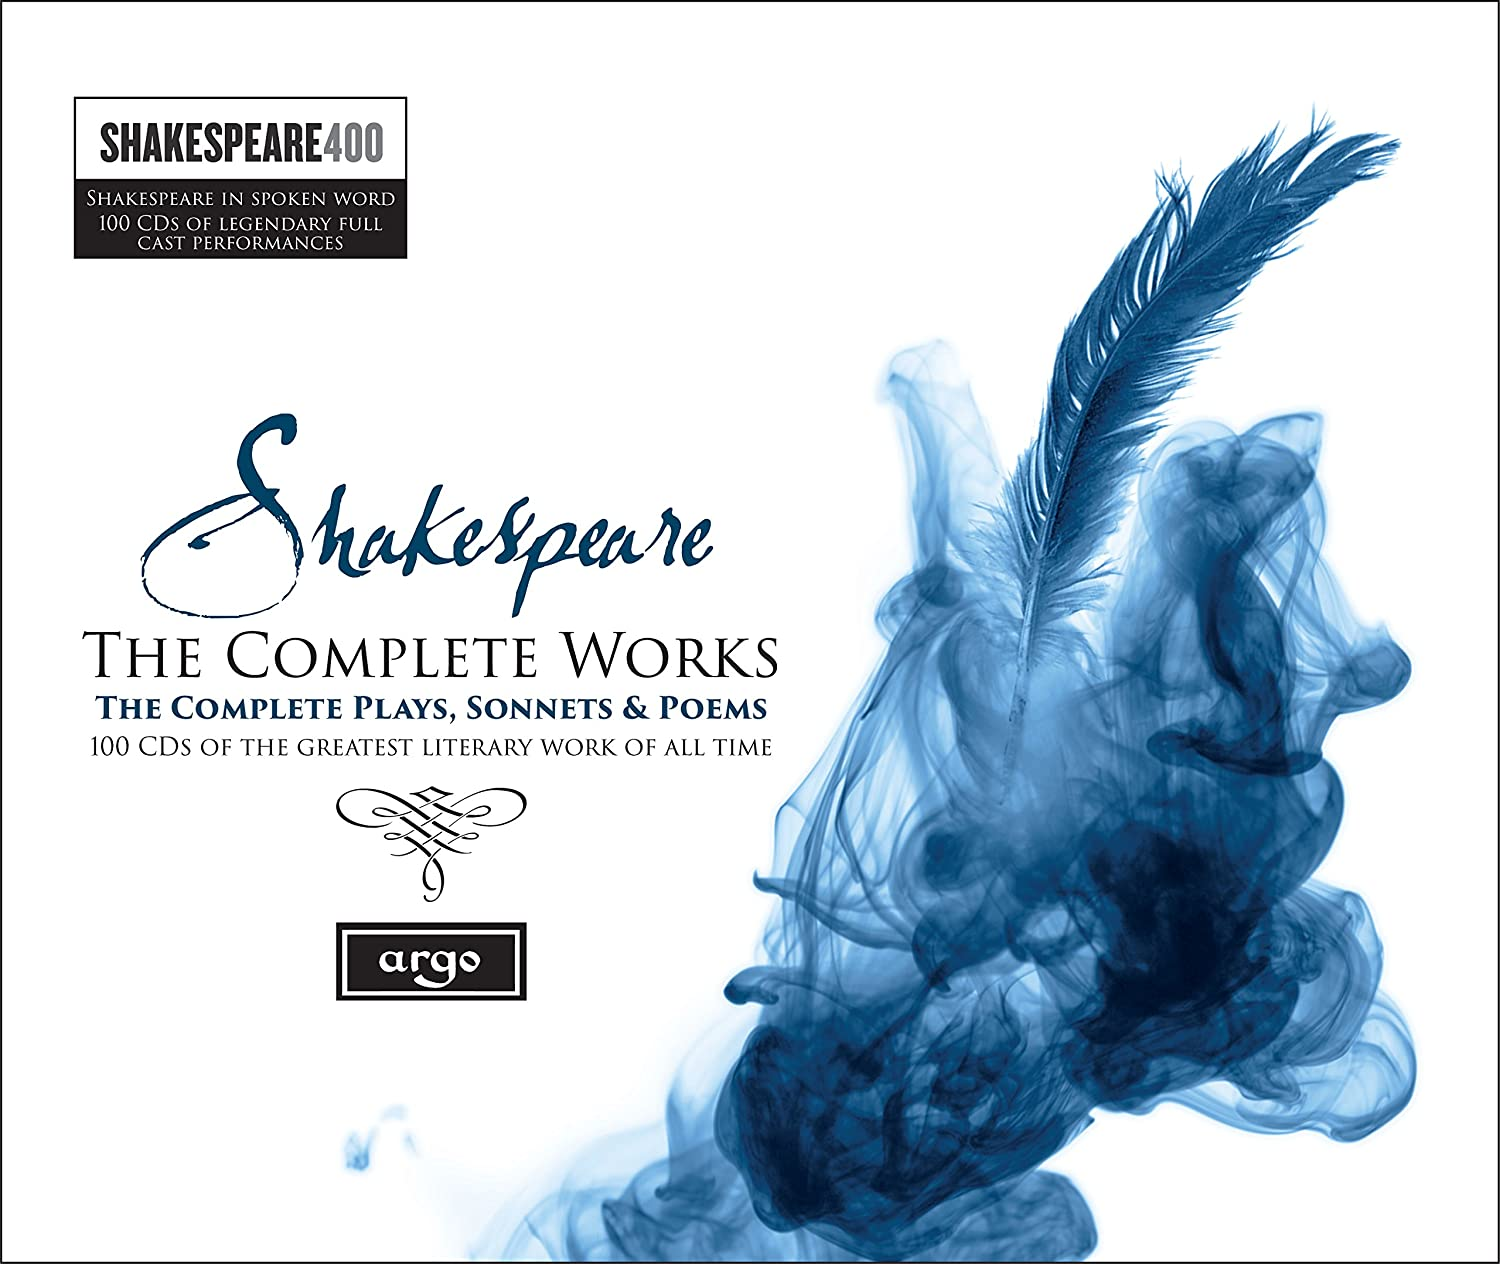 Sir John Gielgud - Shakespeare: The Complete Works [100 CDs][Limited  Edition] - Amazon.com Music